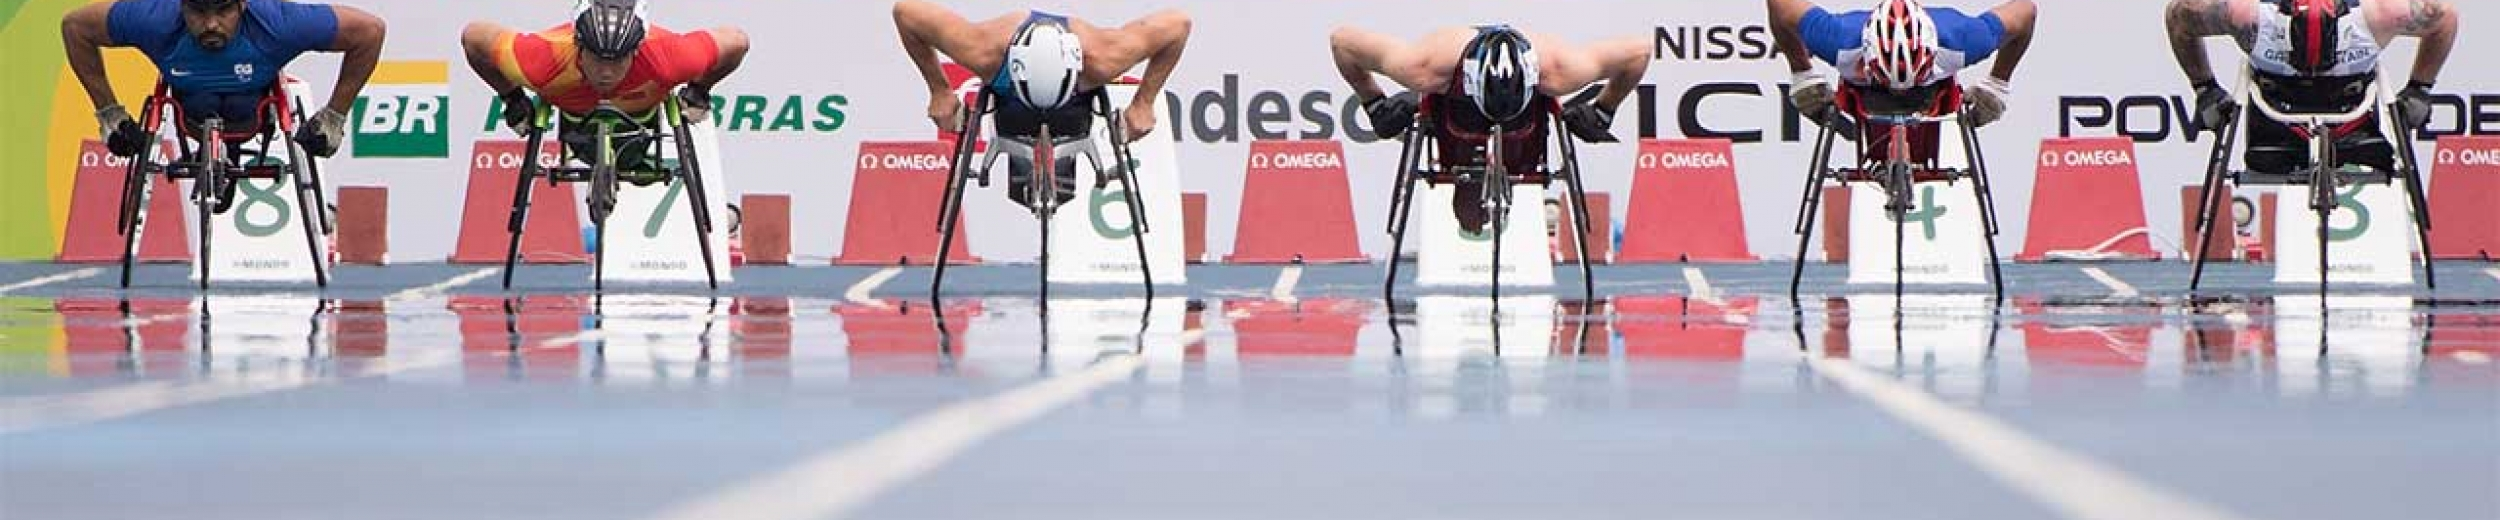 Racers line up in their wheelchairs at the 100m start line; 6 racers side by side in their lanes